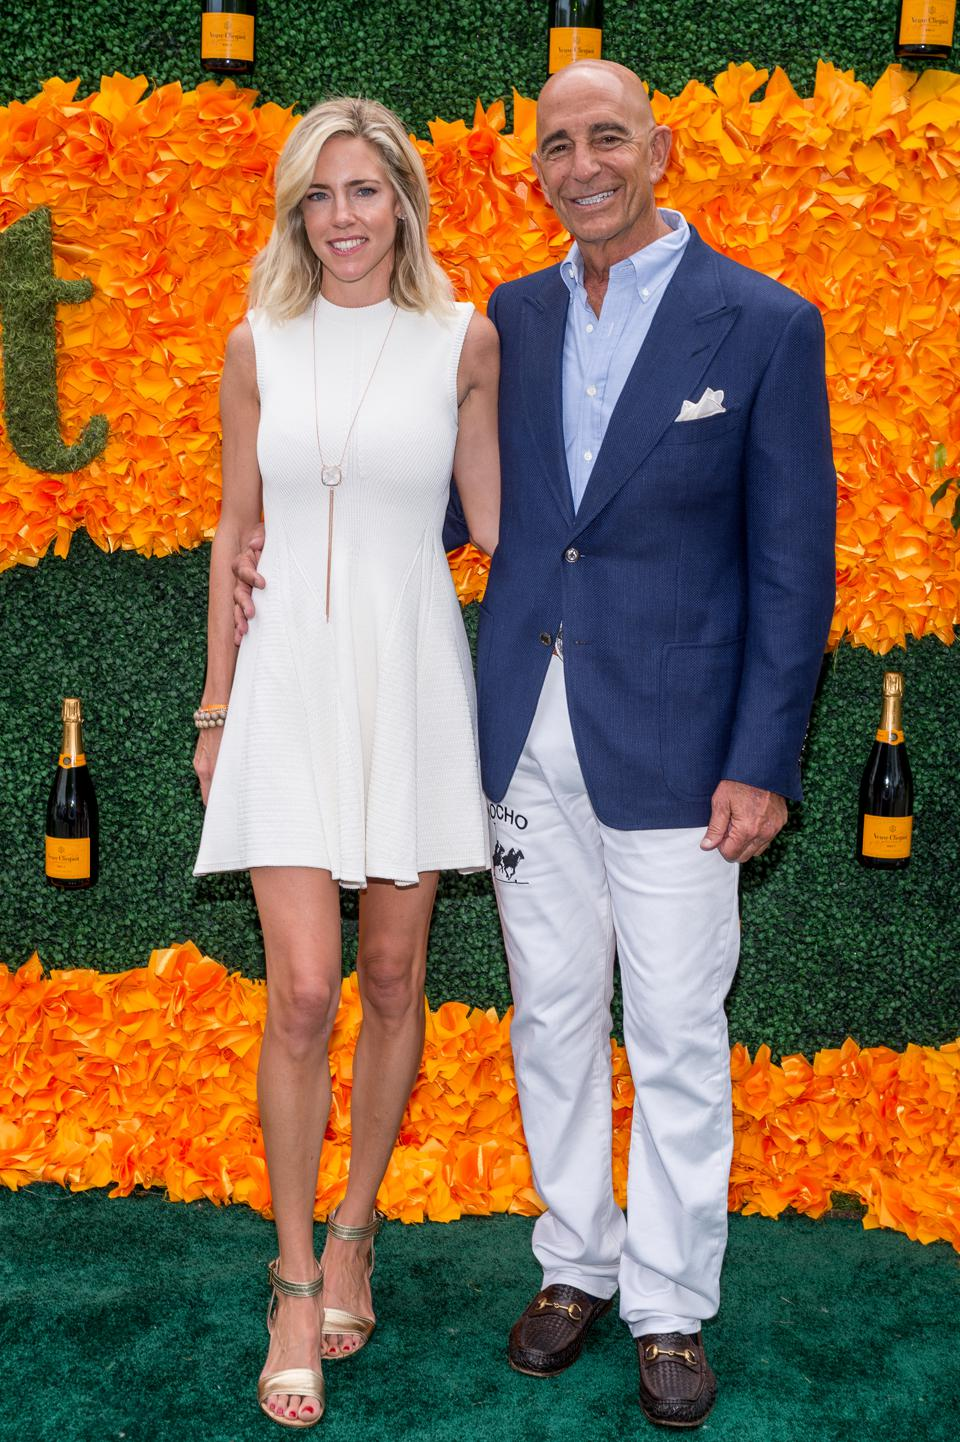 Thomas Barrack and his wife Rachelle at a polo match in Jersey City, N.J.